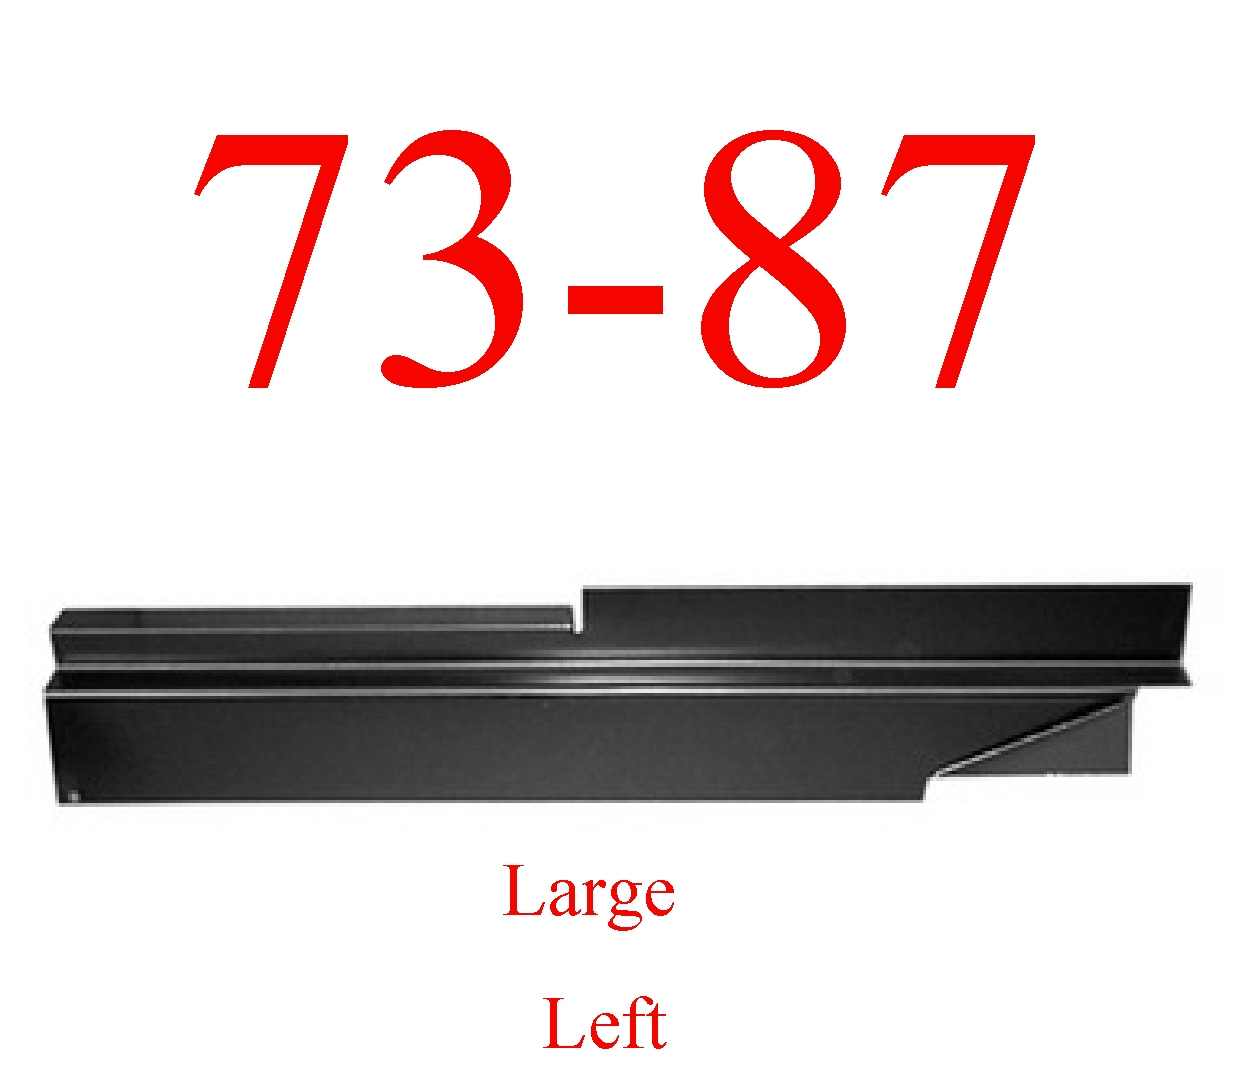 73-87 Chevy Left Large Inner Rocker Panel